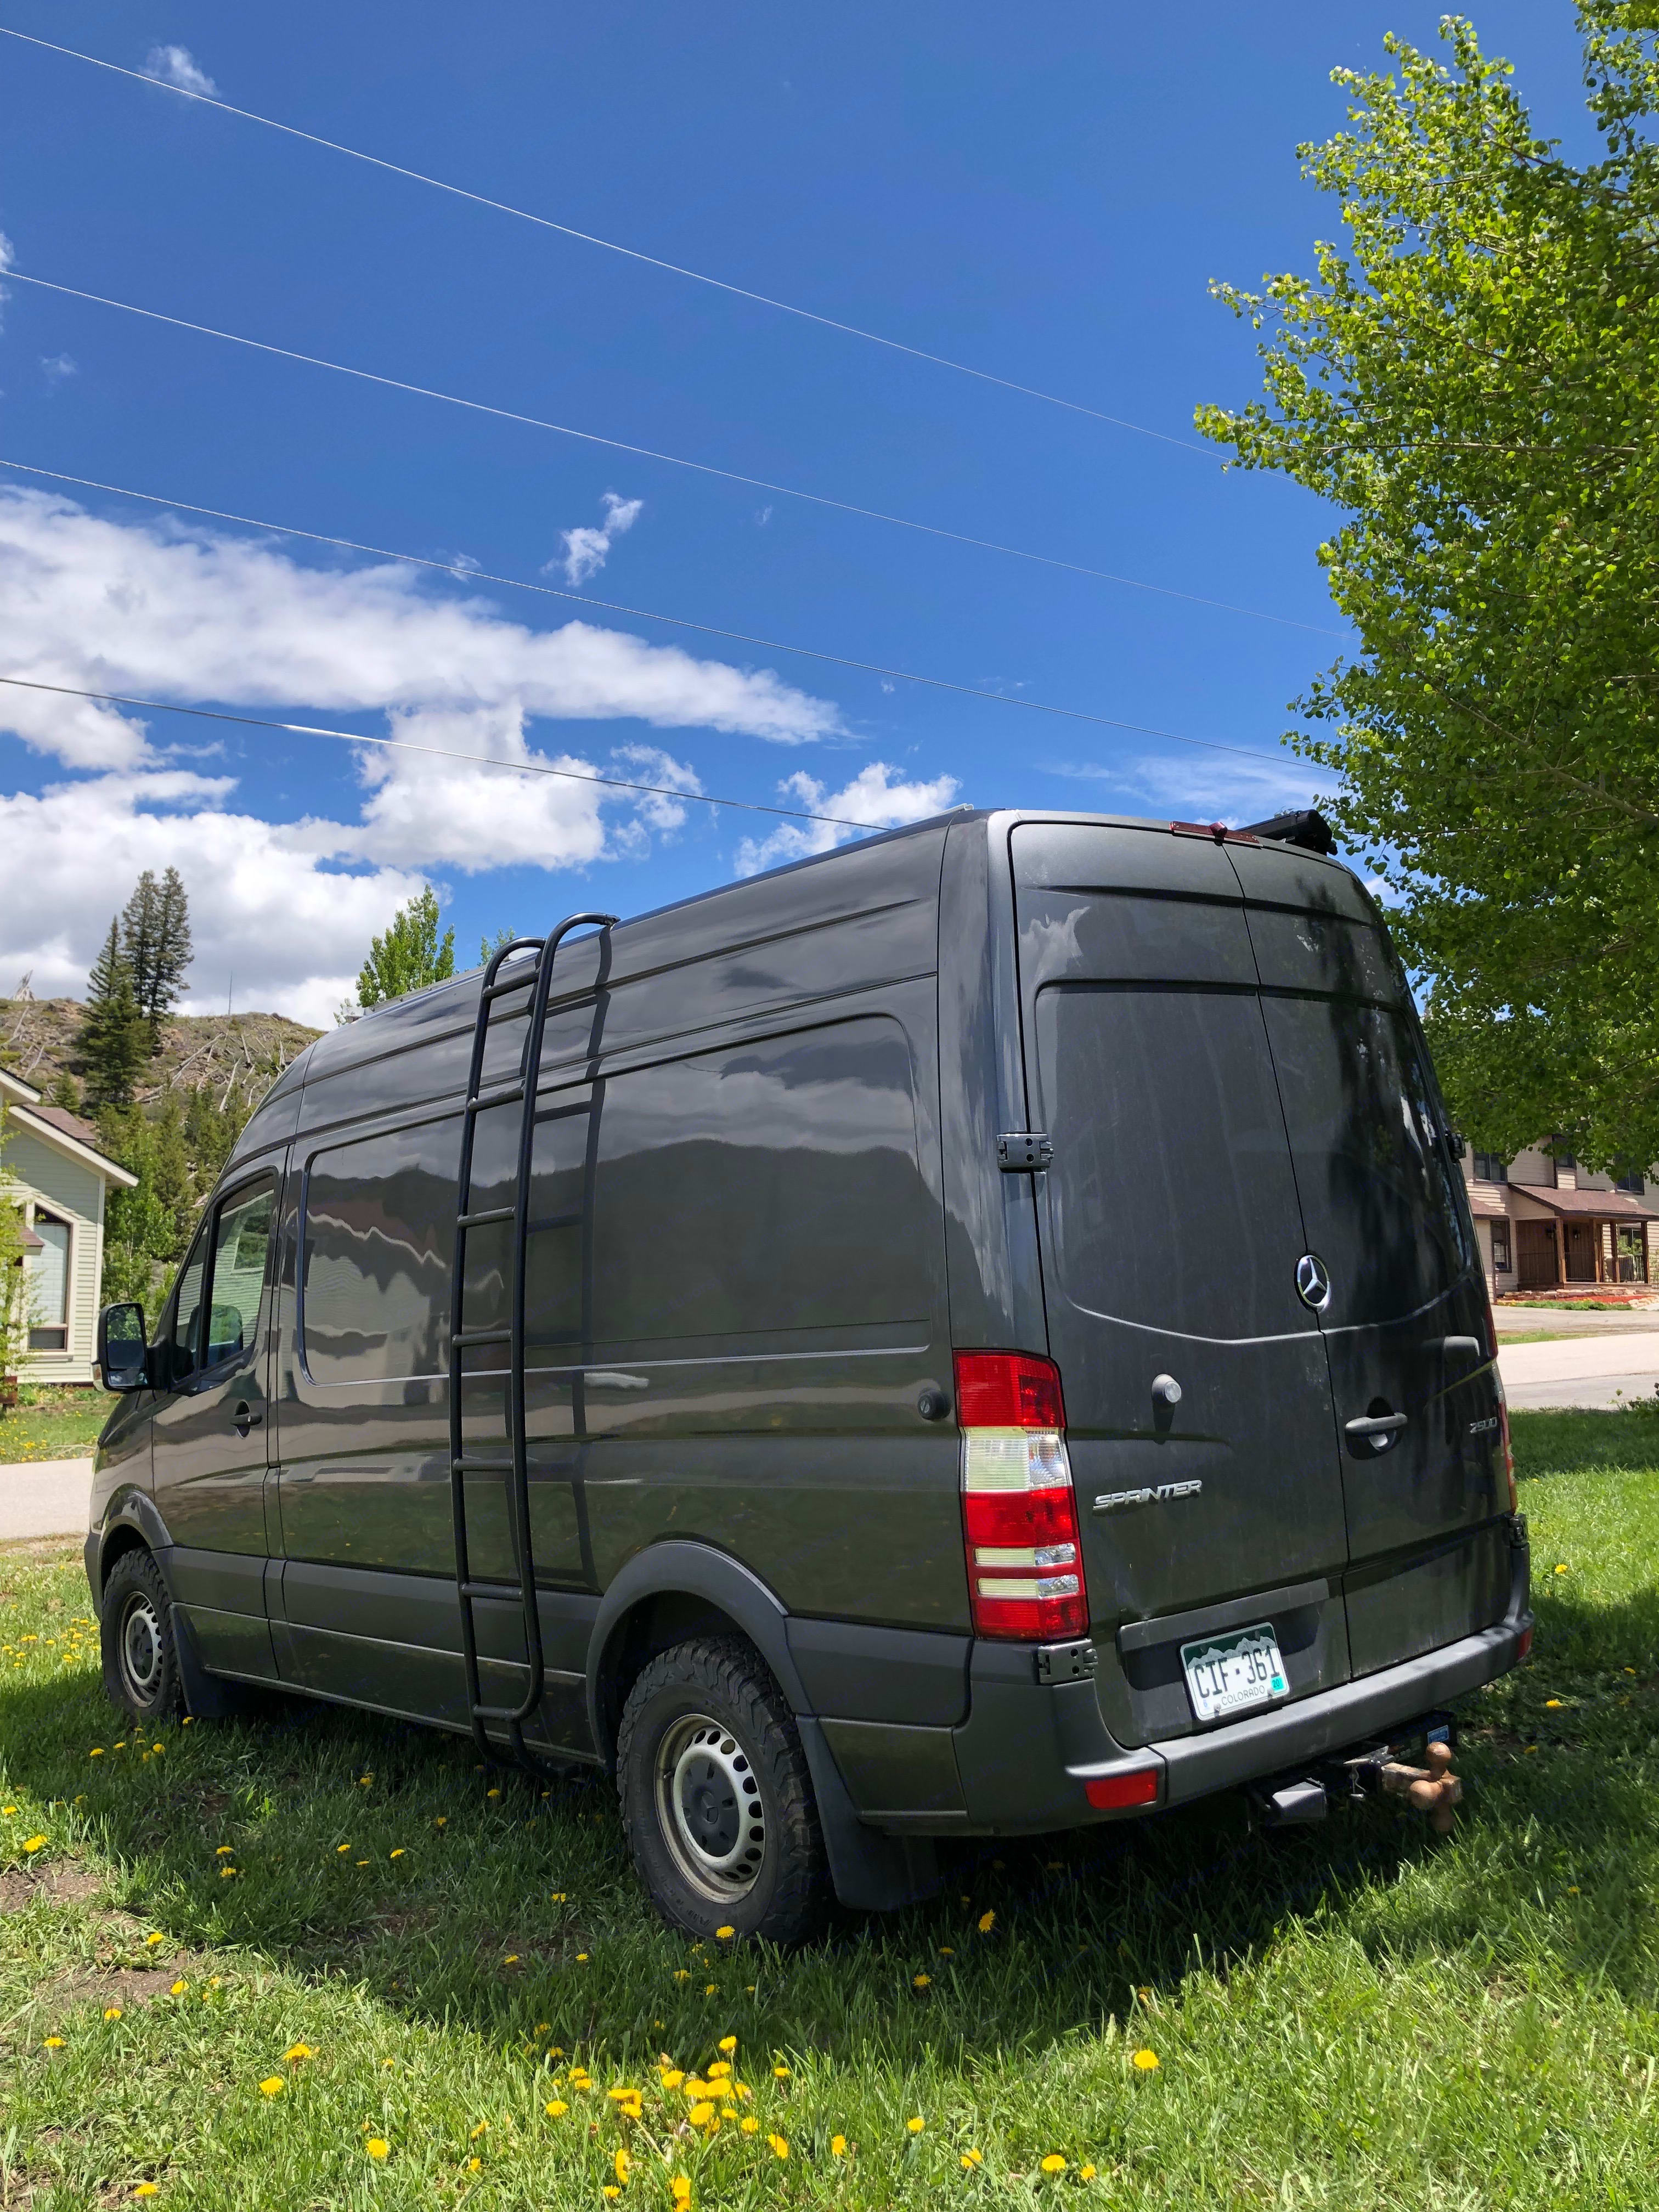 including Studded Snow Tires. Mercedes-Benz Sprinter 2017